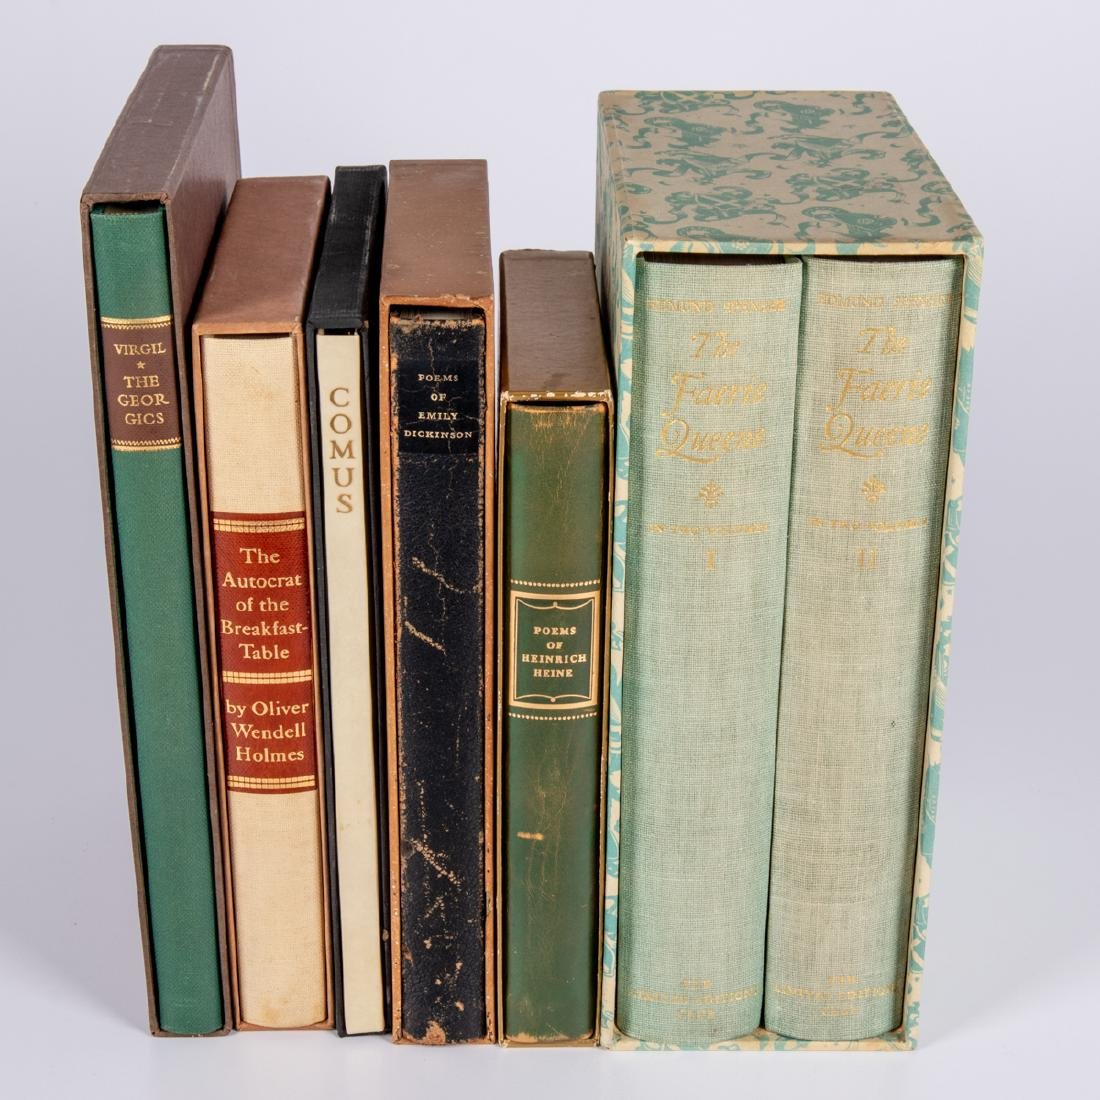 A Collection of Six Limited Editions Club Books